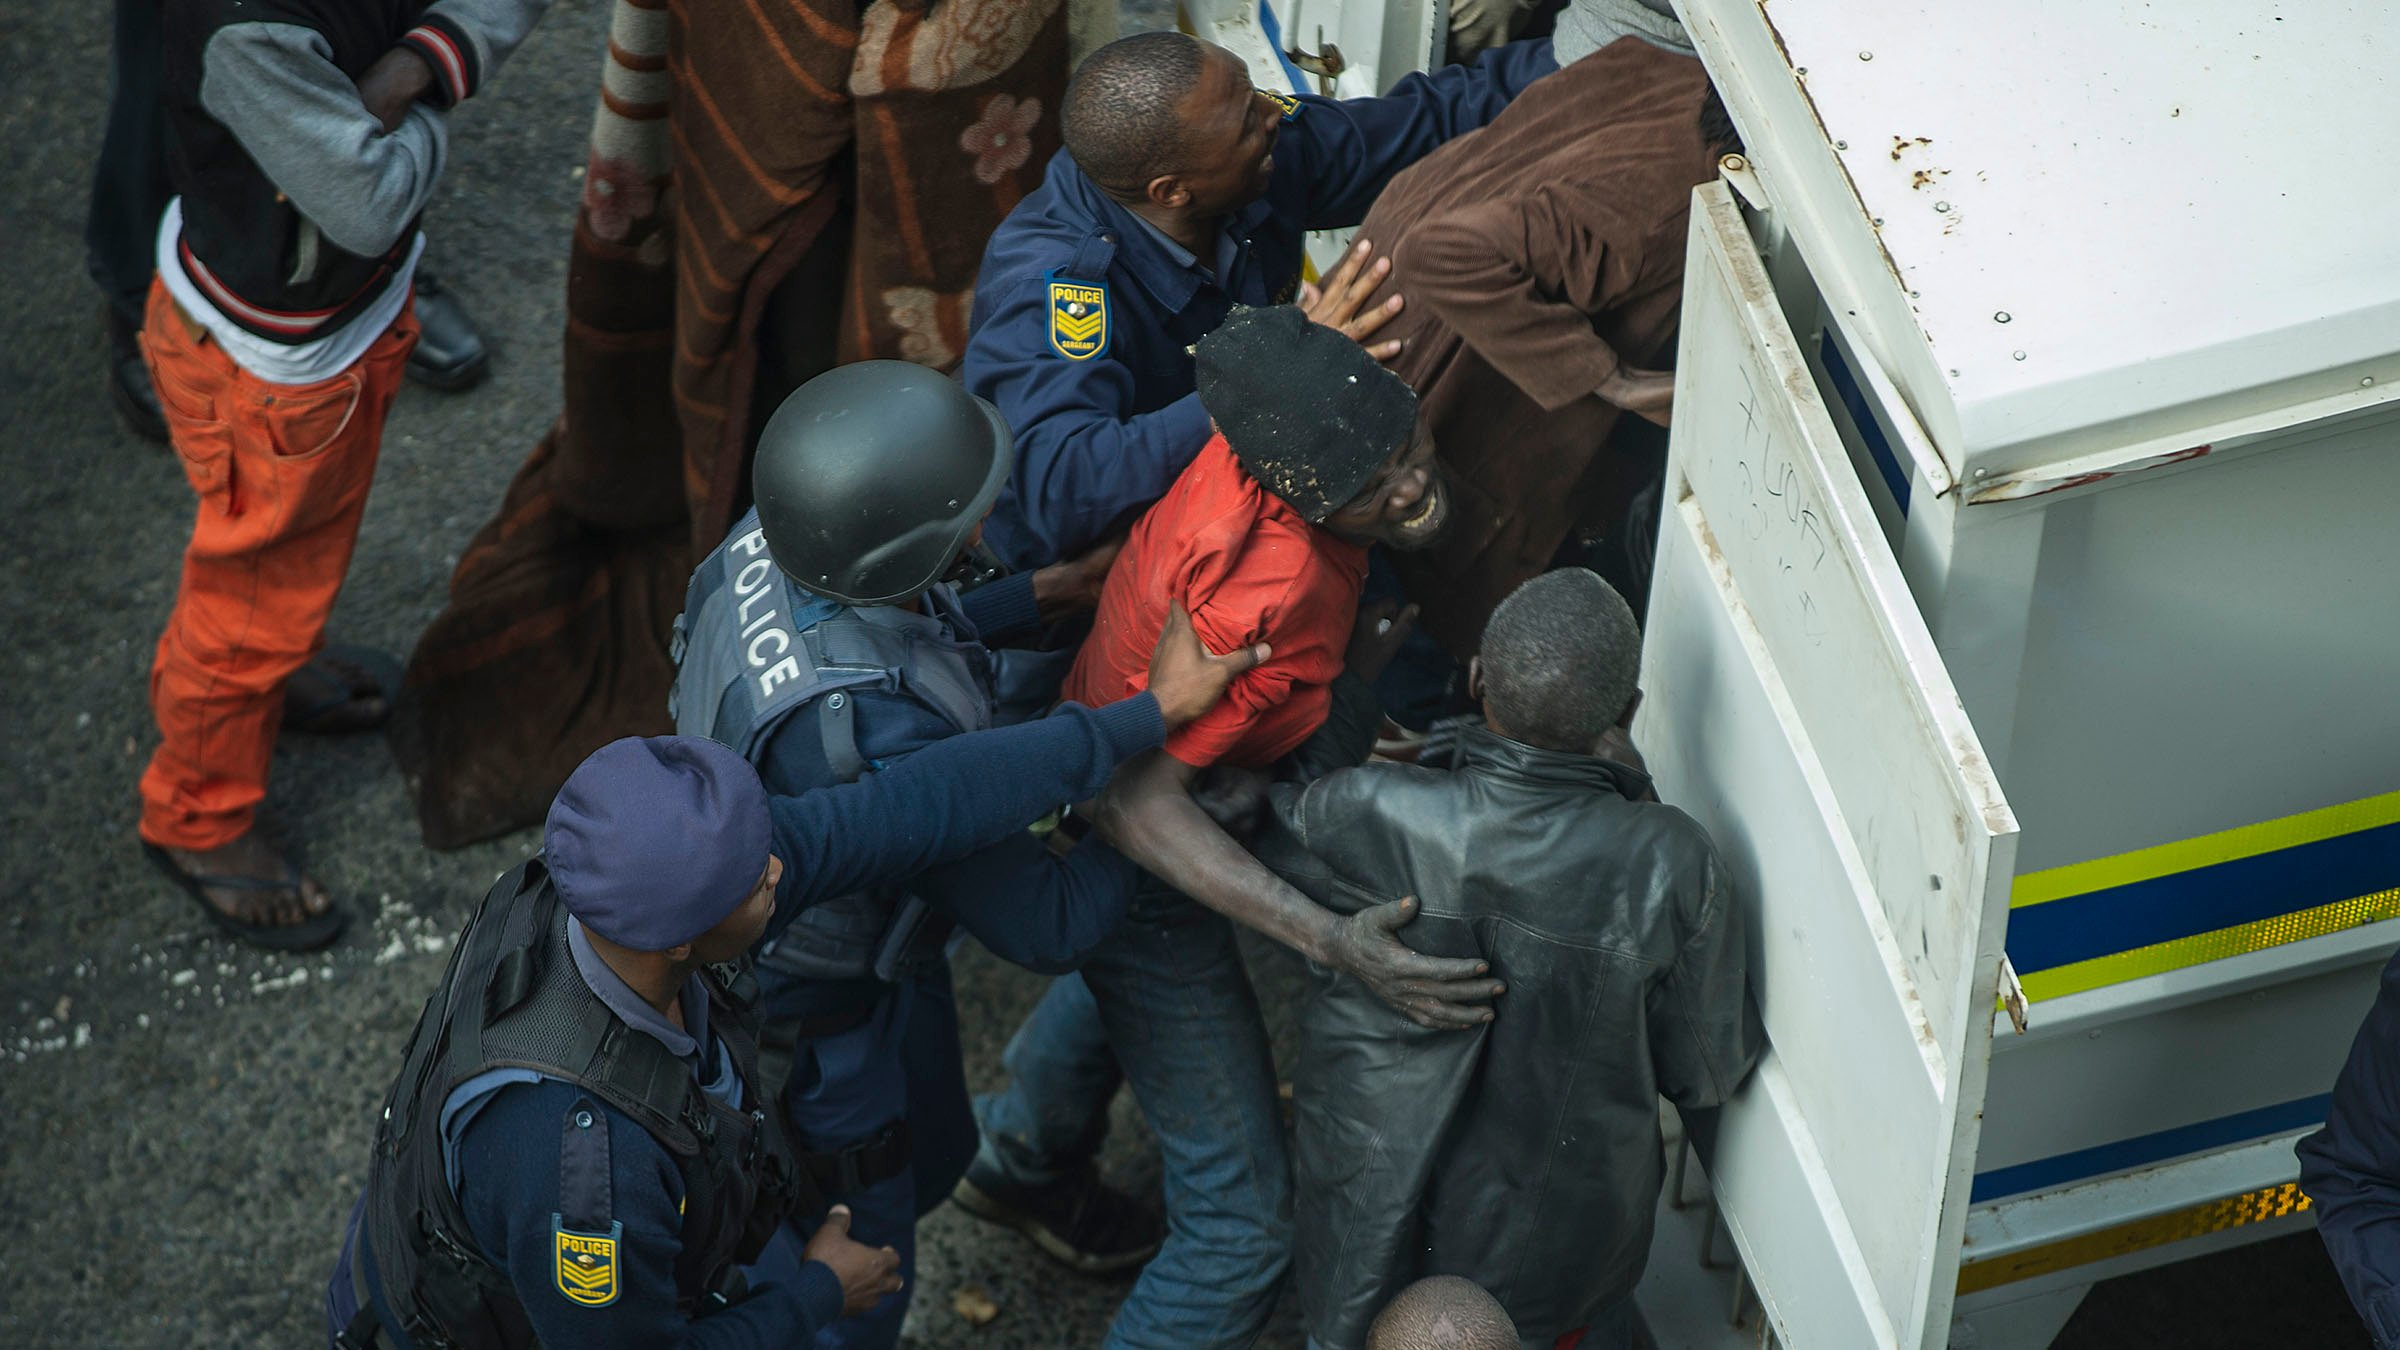 South African police officers raided buildings in Johannesburg's city centre in the early hours of 8 May 2015 and arrested more than 300 foreign nationals.